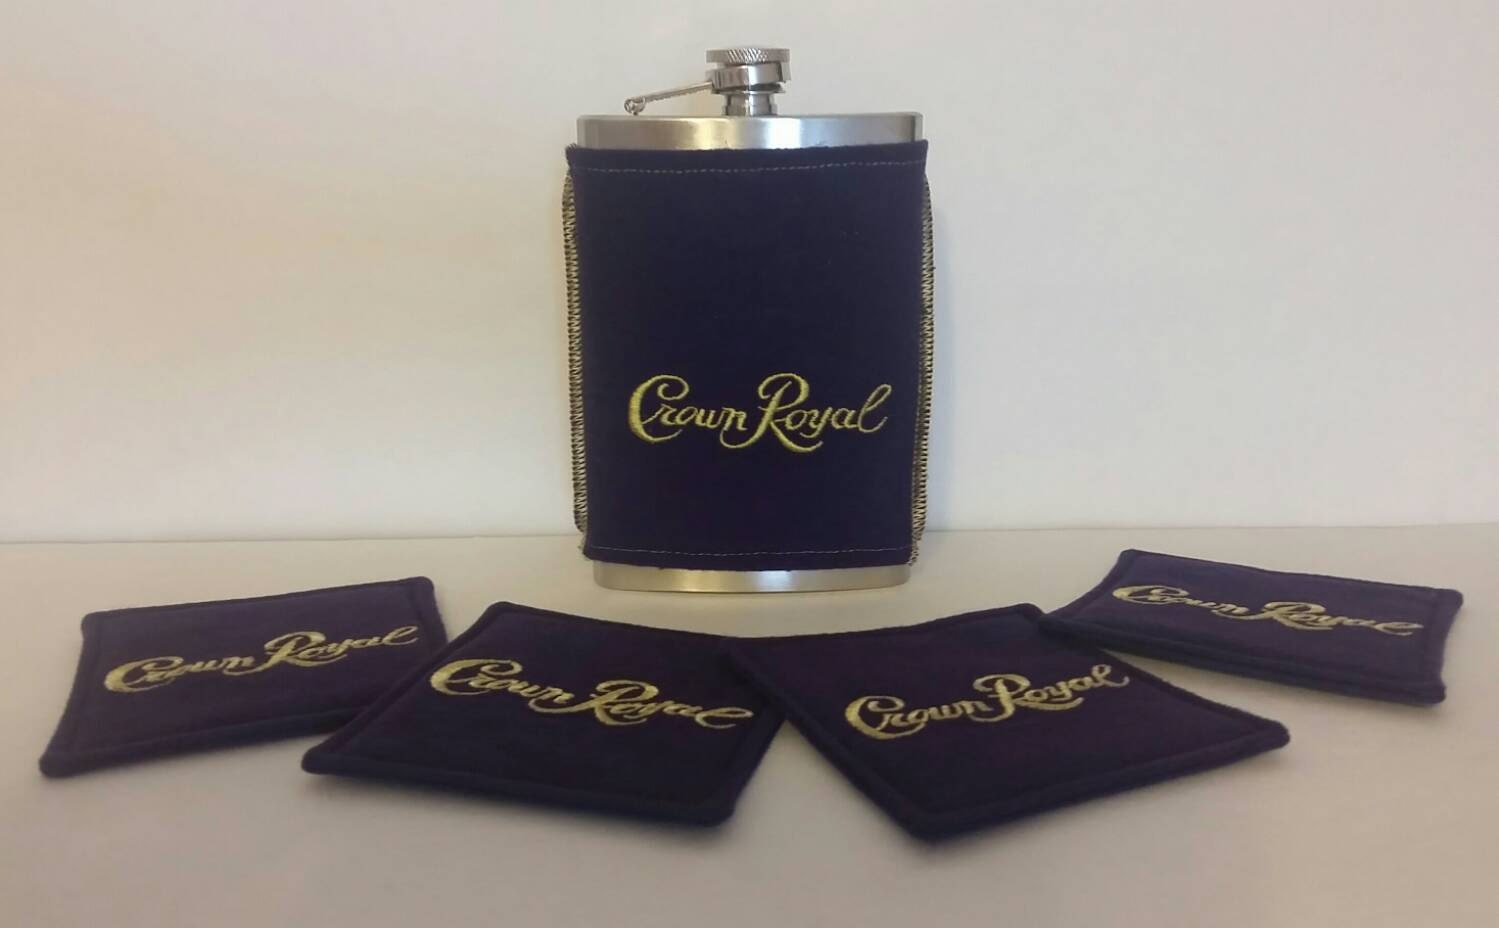 Crown Royal Gift Set Includes 8 Oz. Stainless Steel Flask